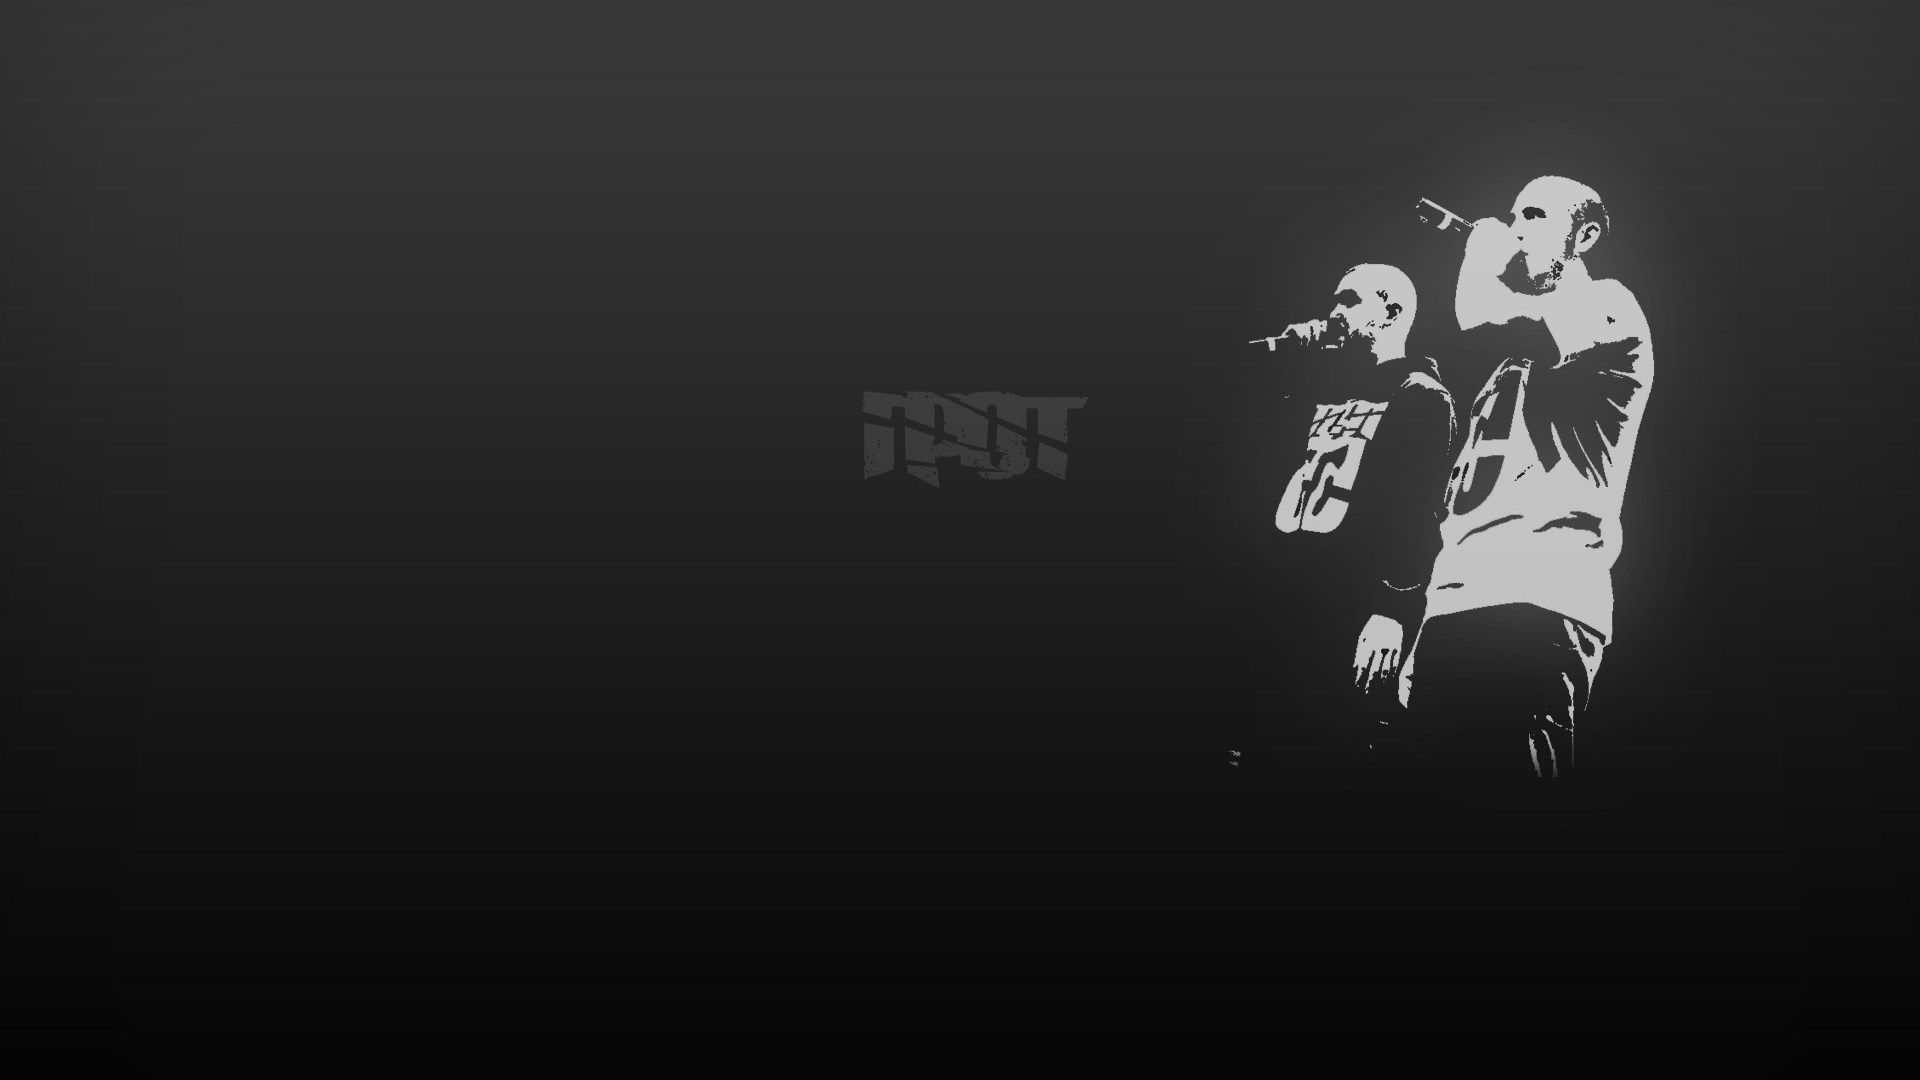 Full Hd Rap Background